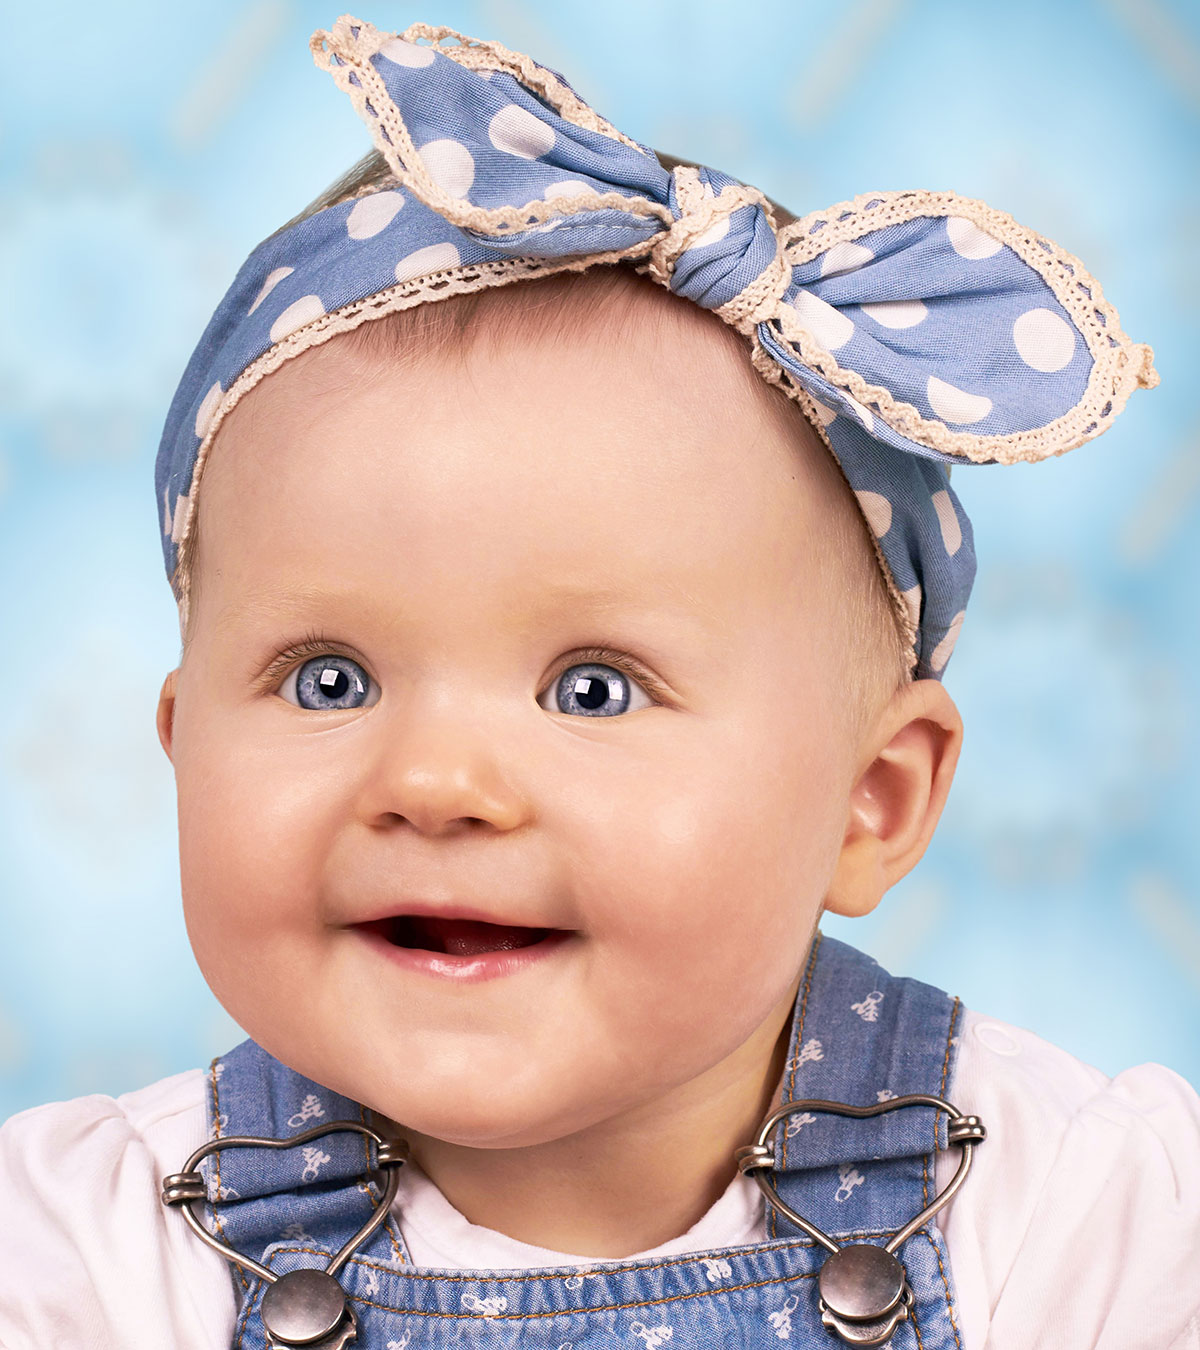 200+ Most Popular Asian Baby Names For Girls And Boys - MomJunction